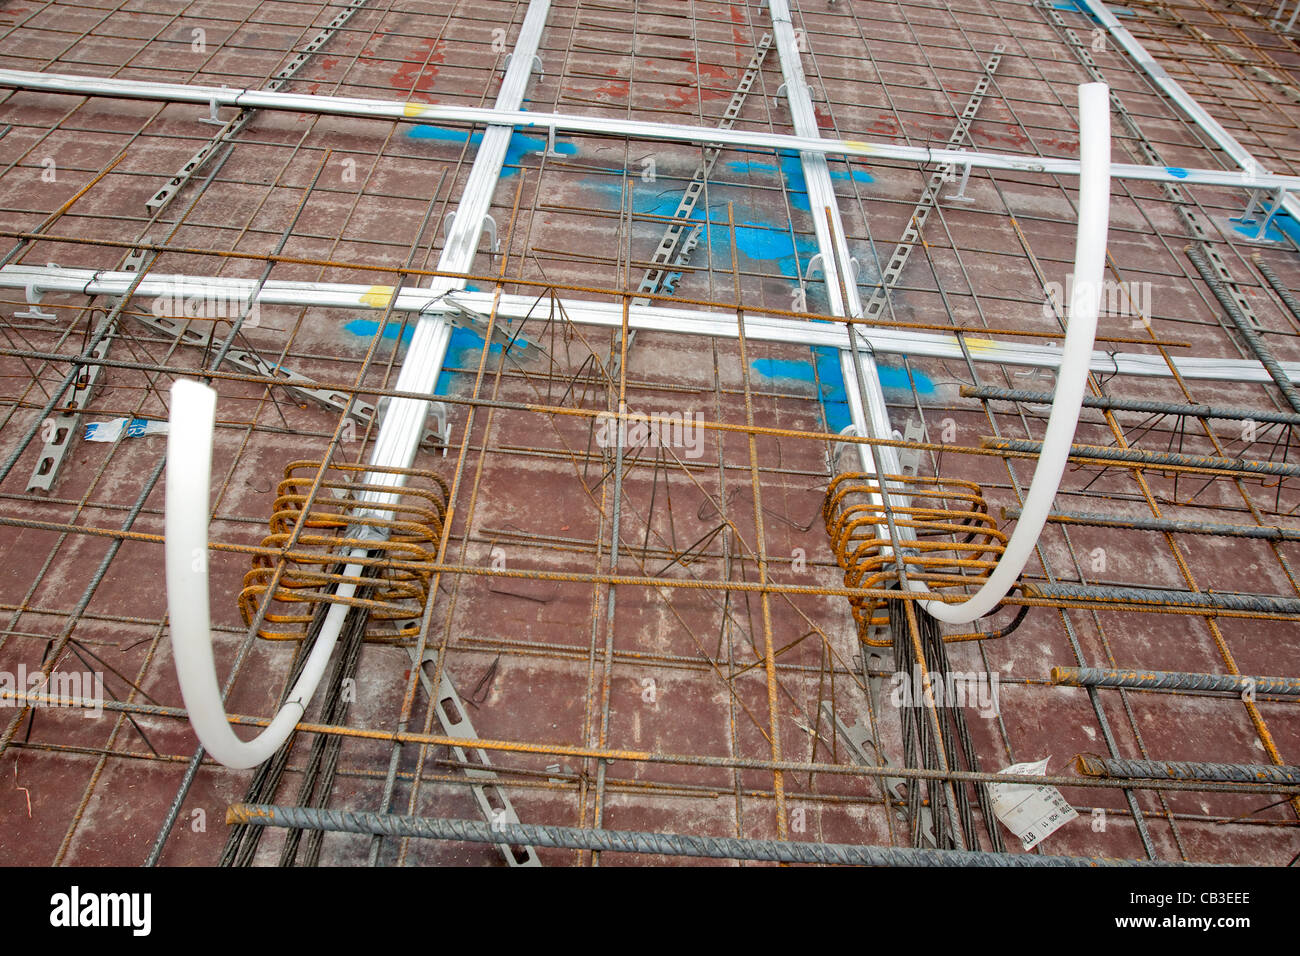 Post-tensioning steel cables in concrete floor formwork